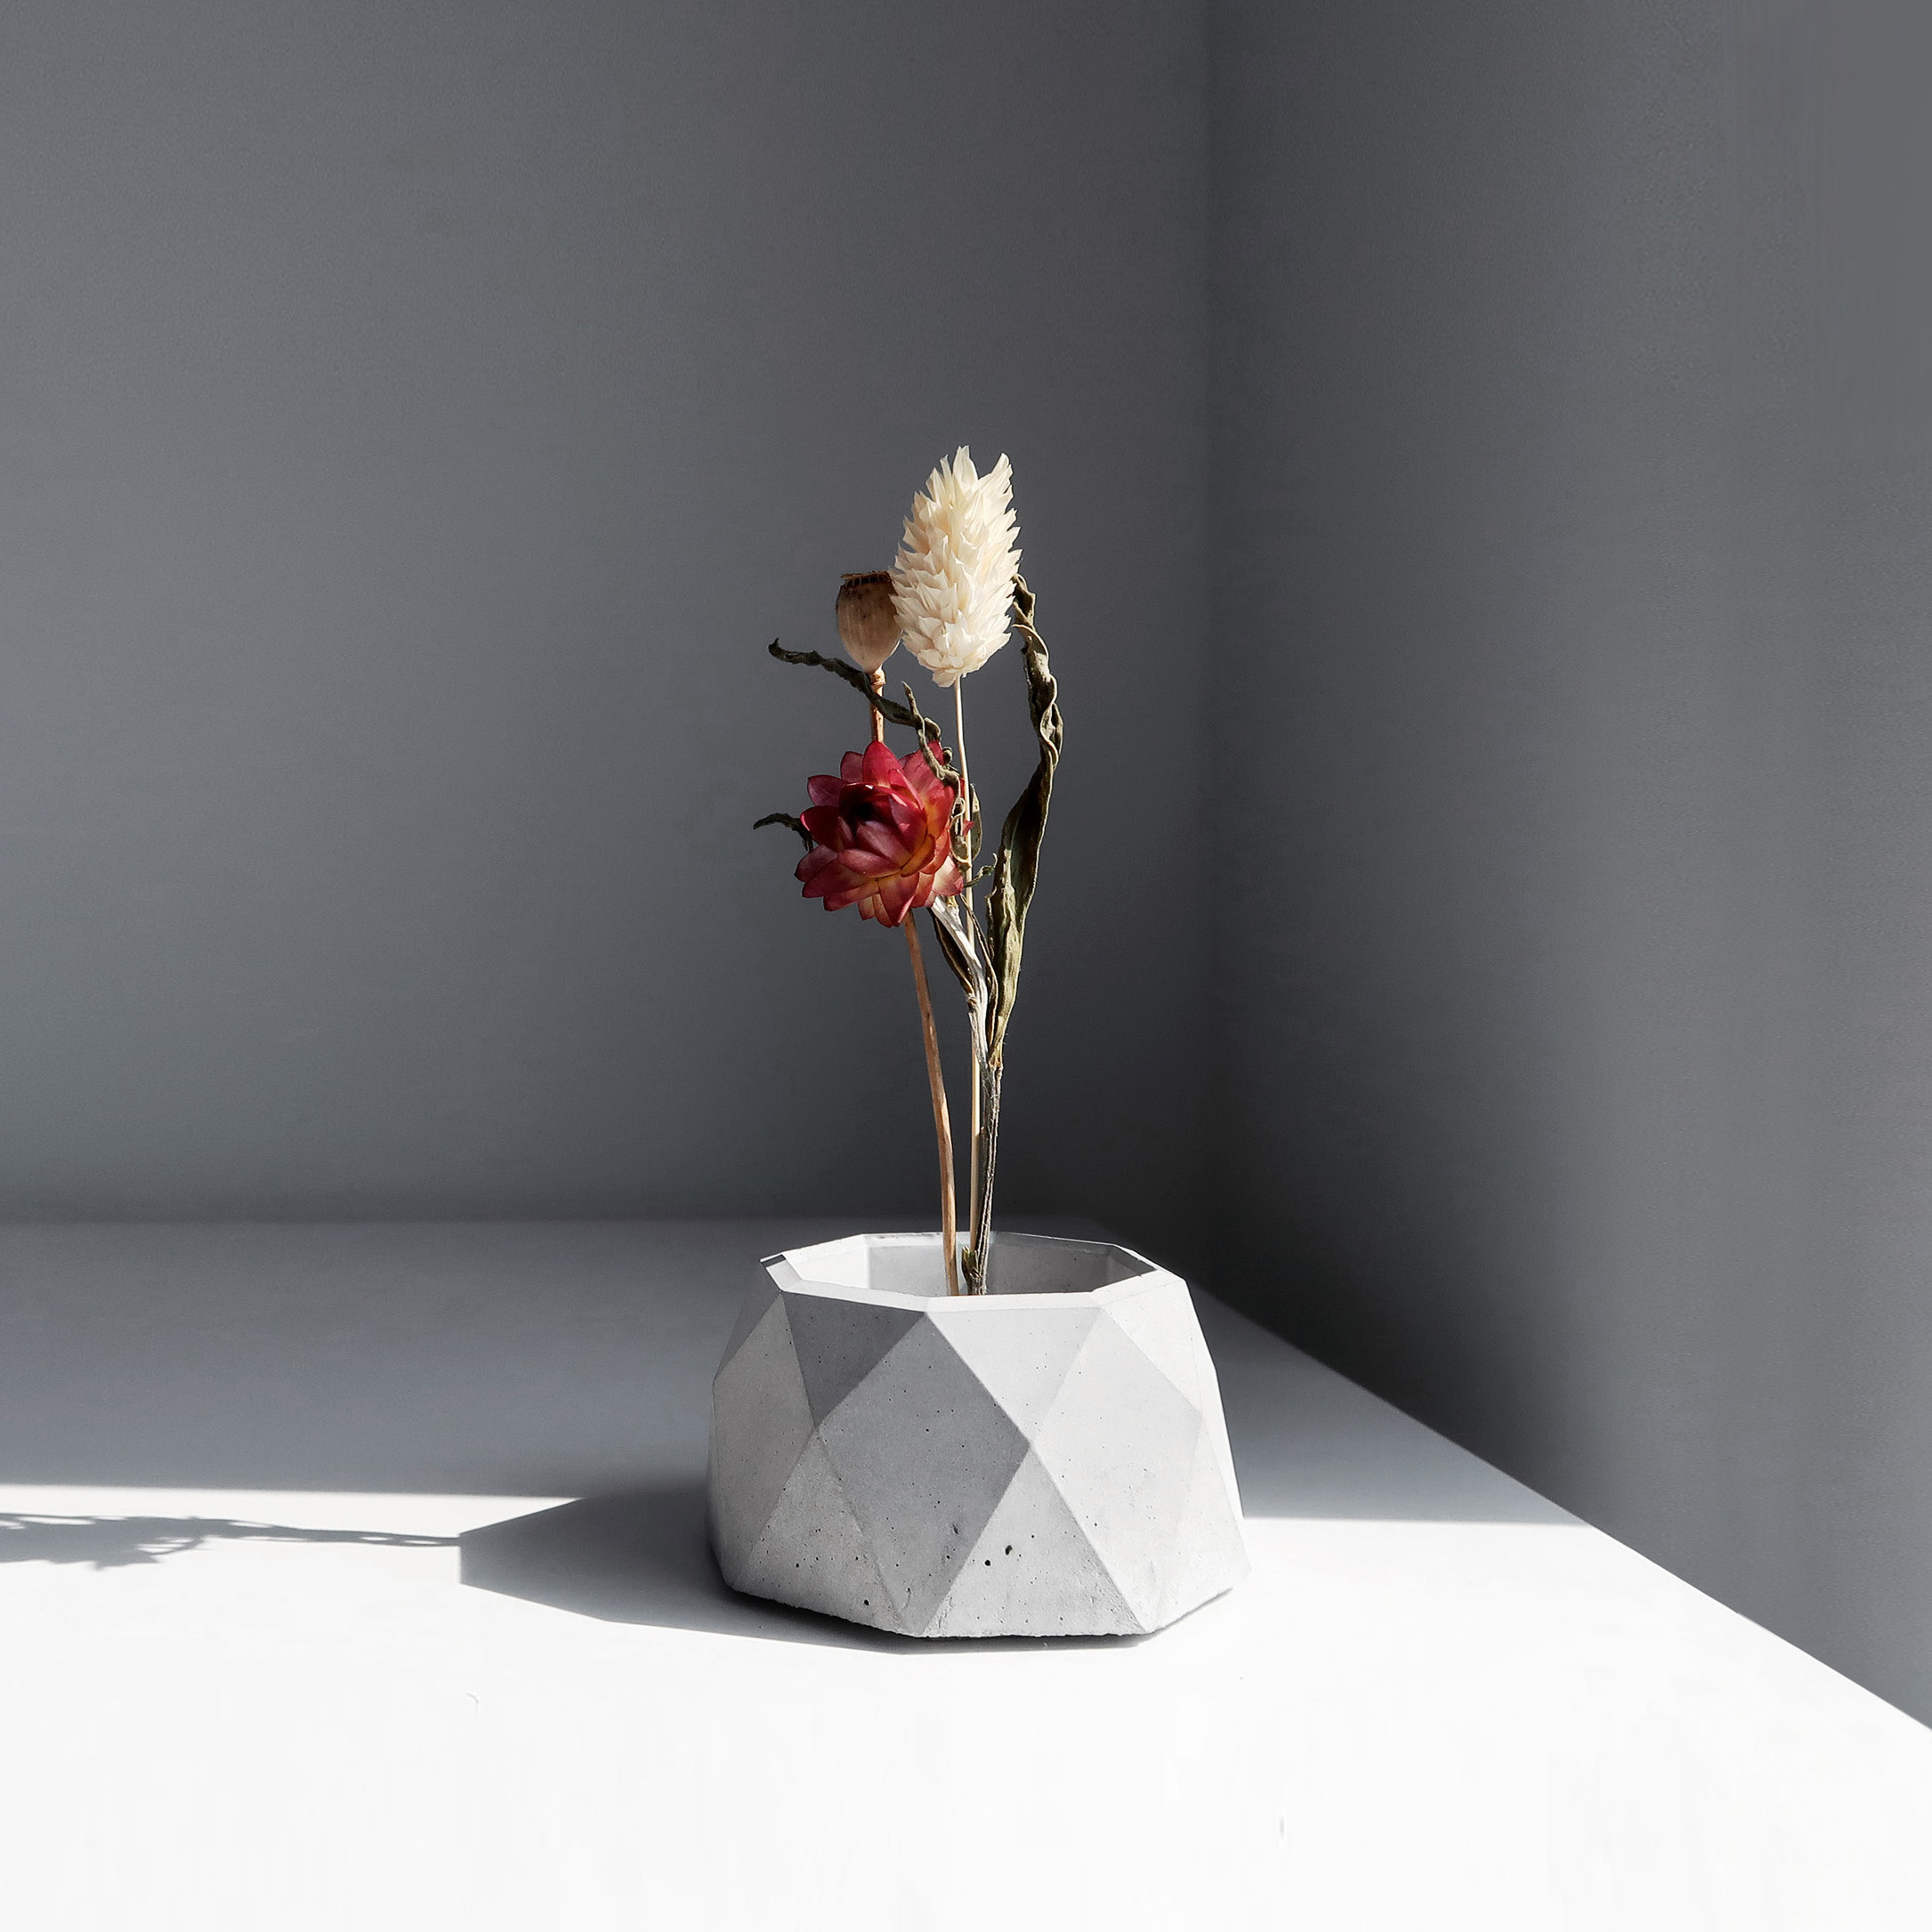 CENTENARY 百年紀念多用途水泥黃銅座盆器 / Geometry concrete candle holder with dried flowers